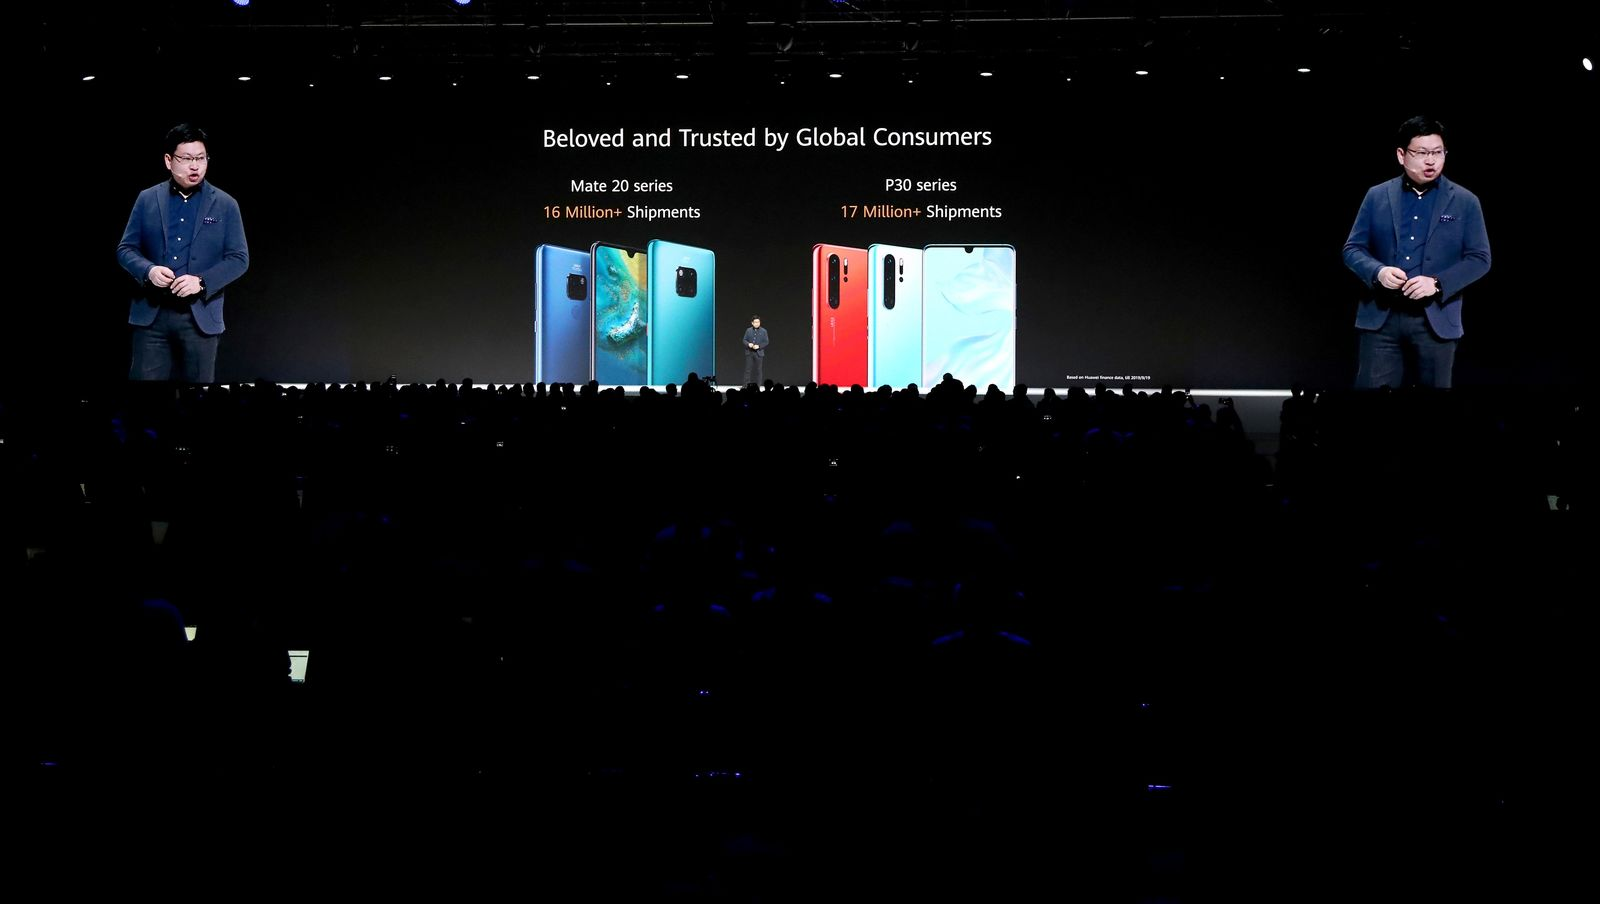 Richard Yu, CEO of the Huawei consumer business group, presents new devices during an event in Munich, Germany, Thursday, Sept. 19, 2019. (AP Photo/Matthias Schrader)